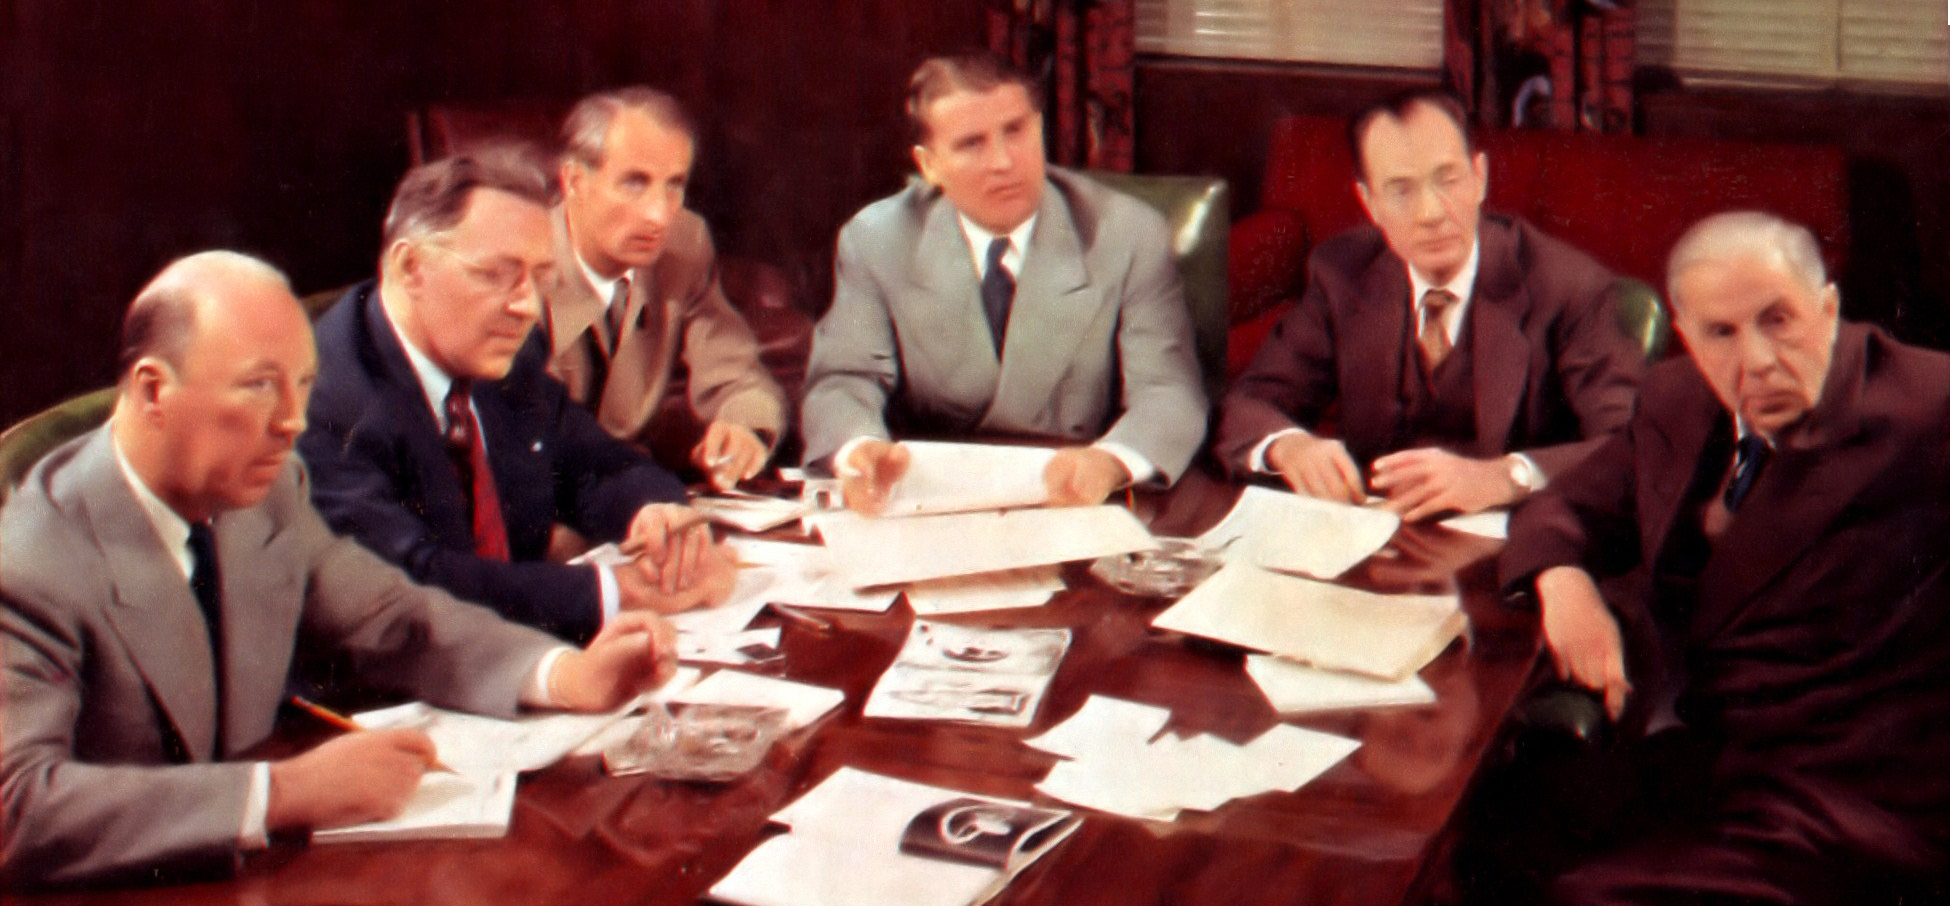 Left to right: Rolf Klep, Willy Ley, Heinz Haber, Wernher von Braun, Fred L. Whipple and Chesley Bonestell